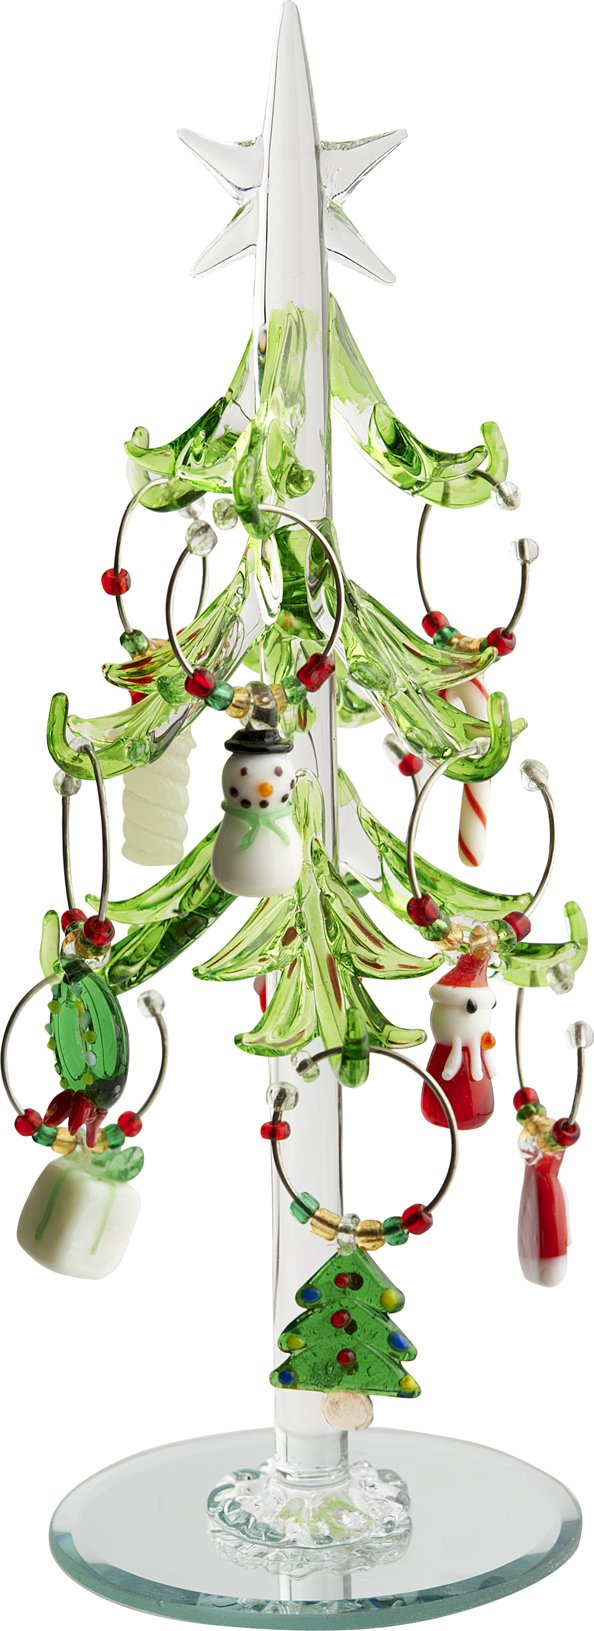 LSArts Green Leaf Christmas Tree Wine Charms with Wine Markers, 7.5-Inch by LSArts